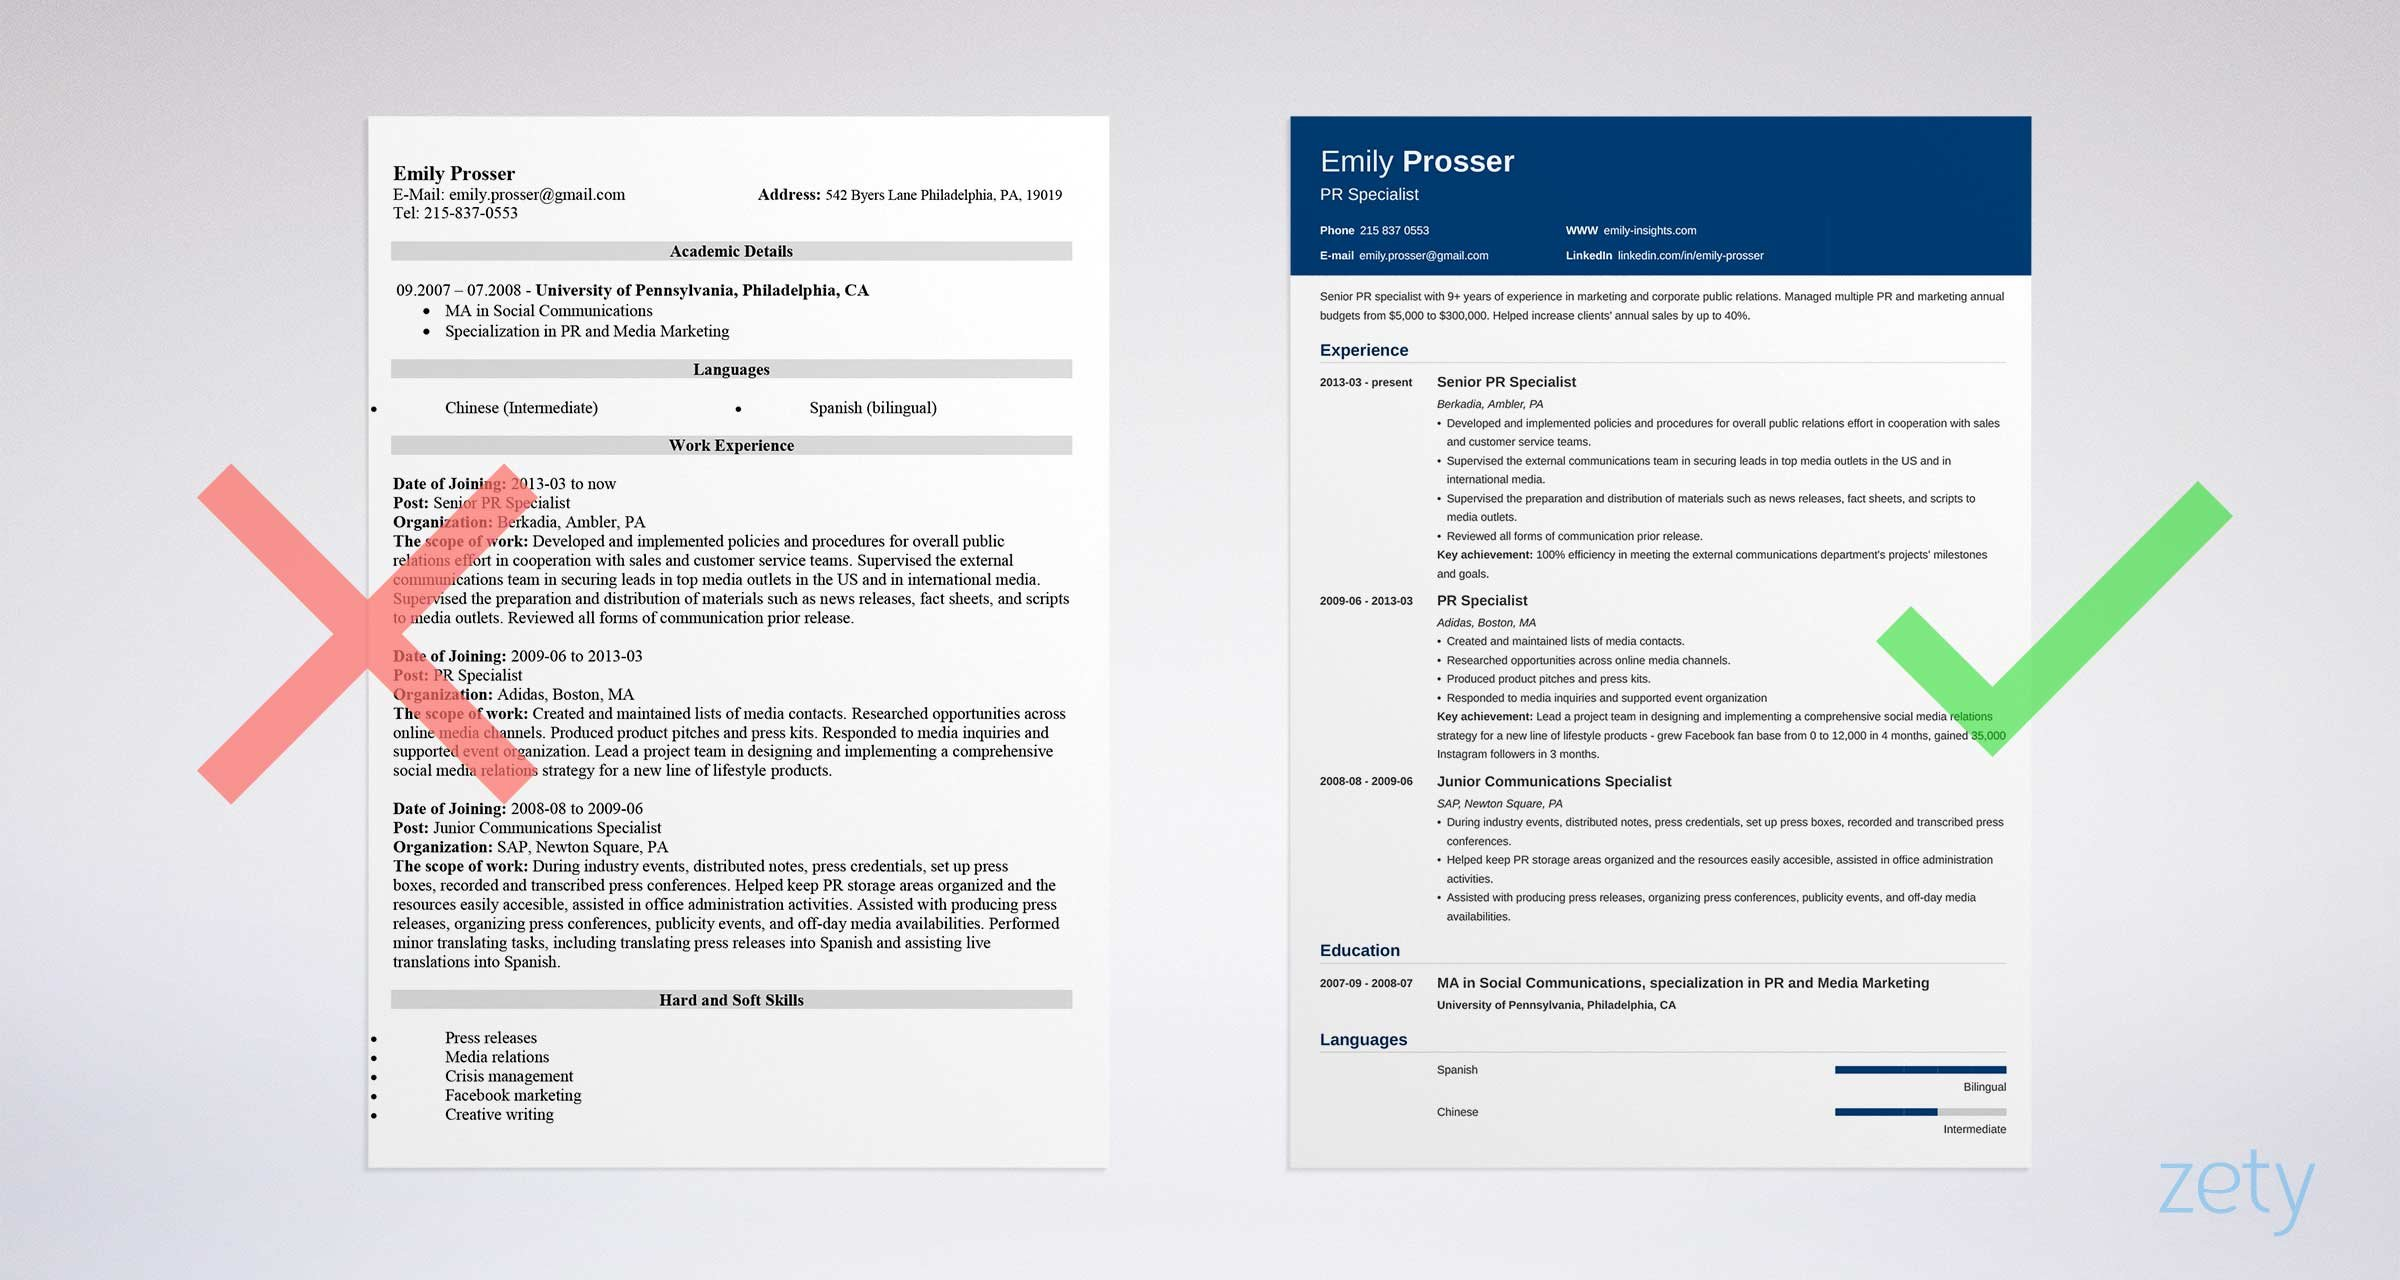 15 resume design ideas inspirations templateshow to tutorial bad and good resume designs comparison altavistaventures